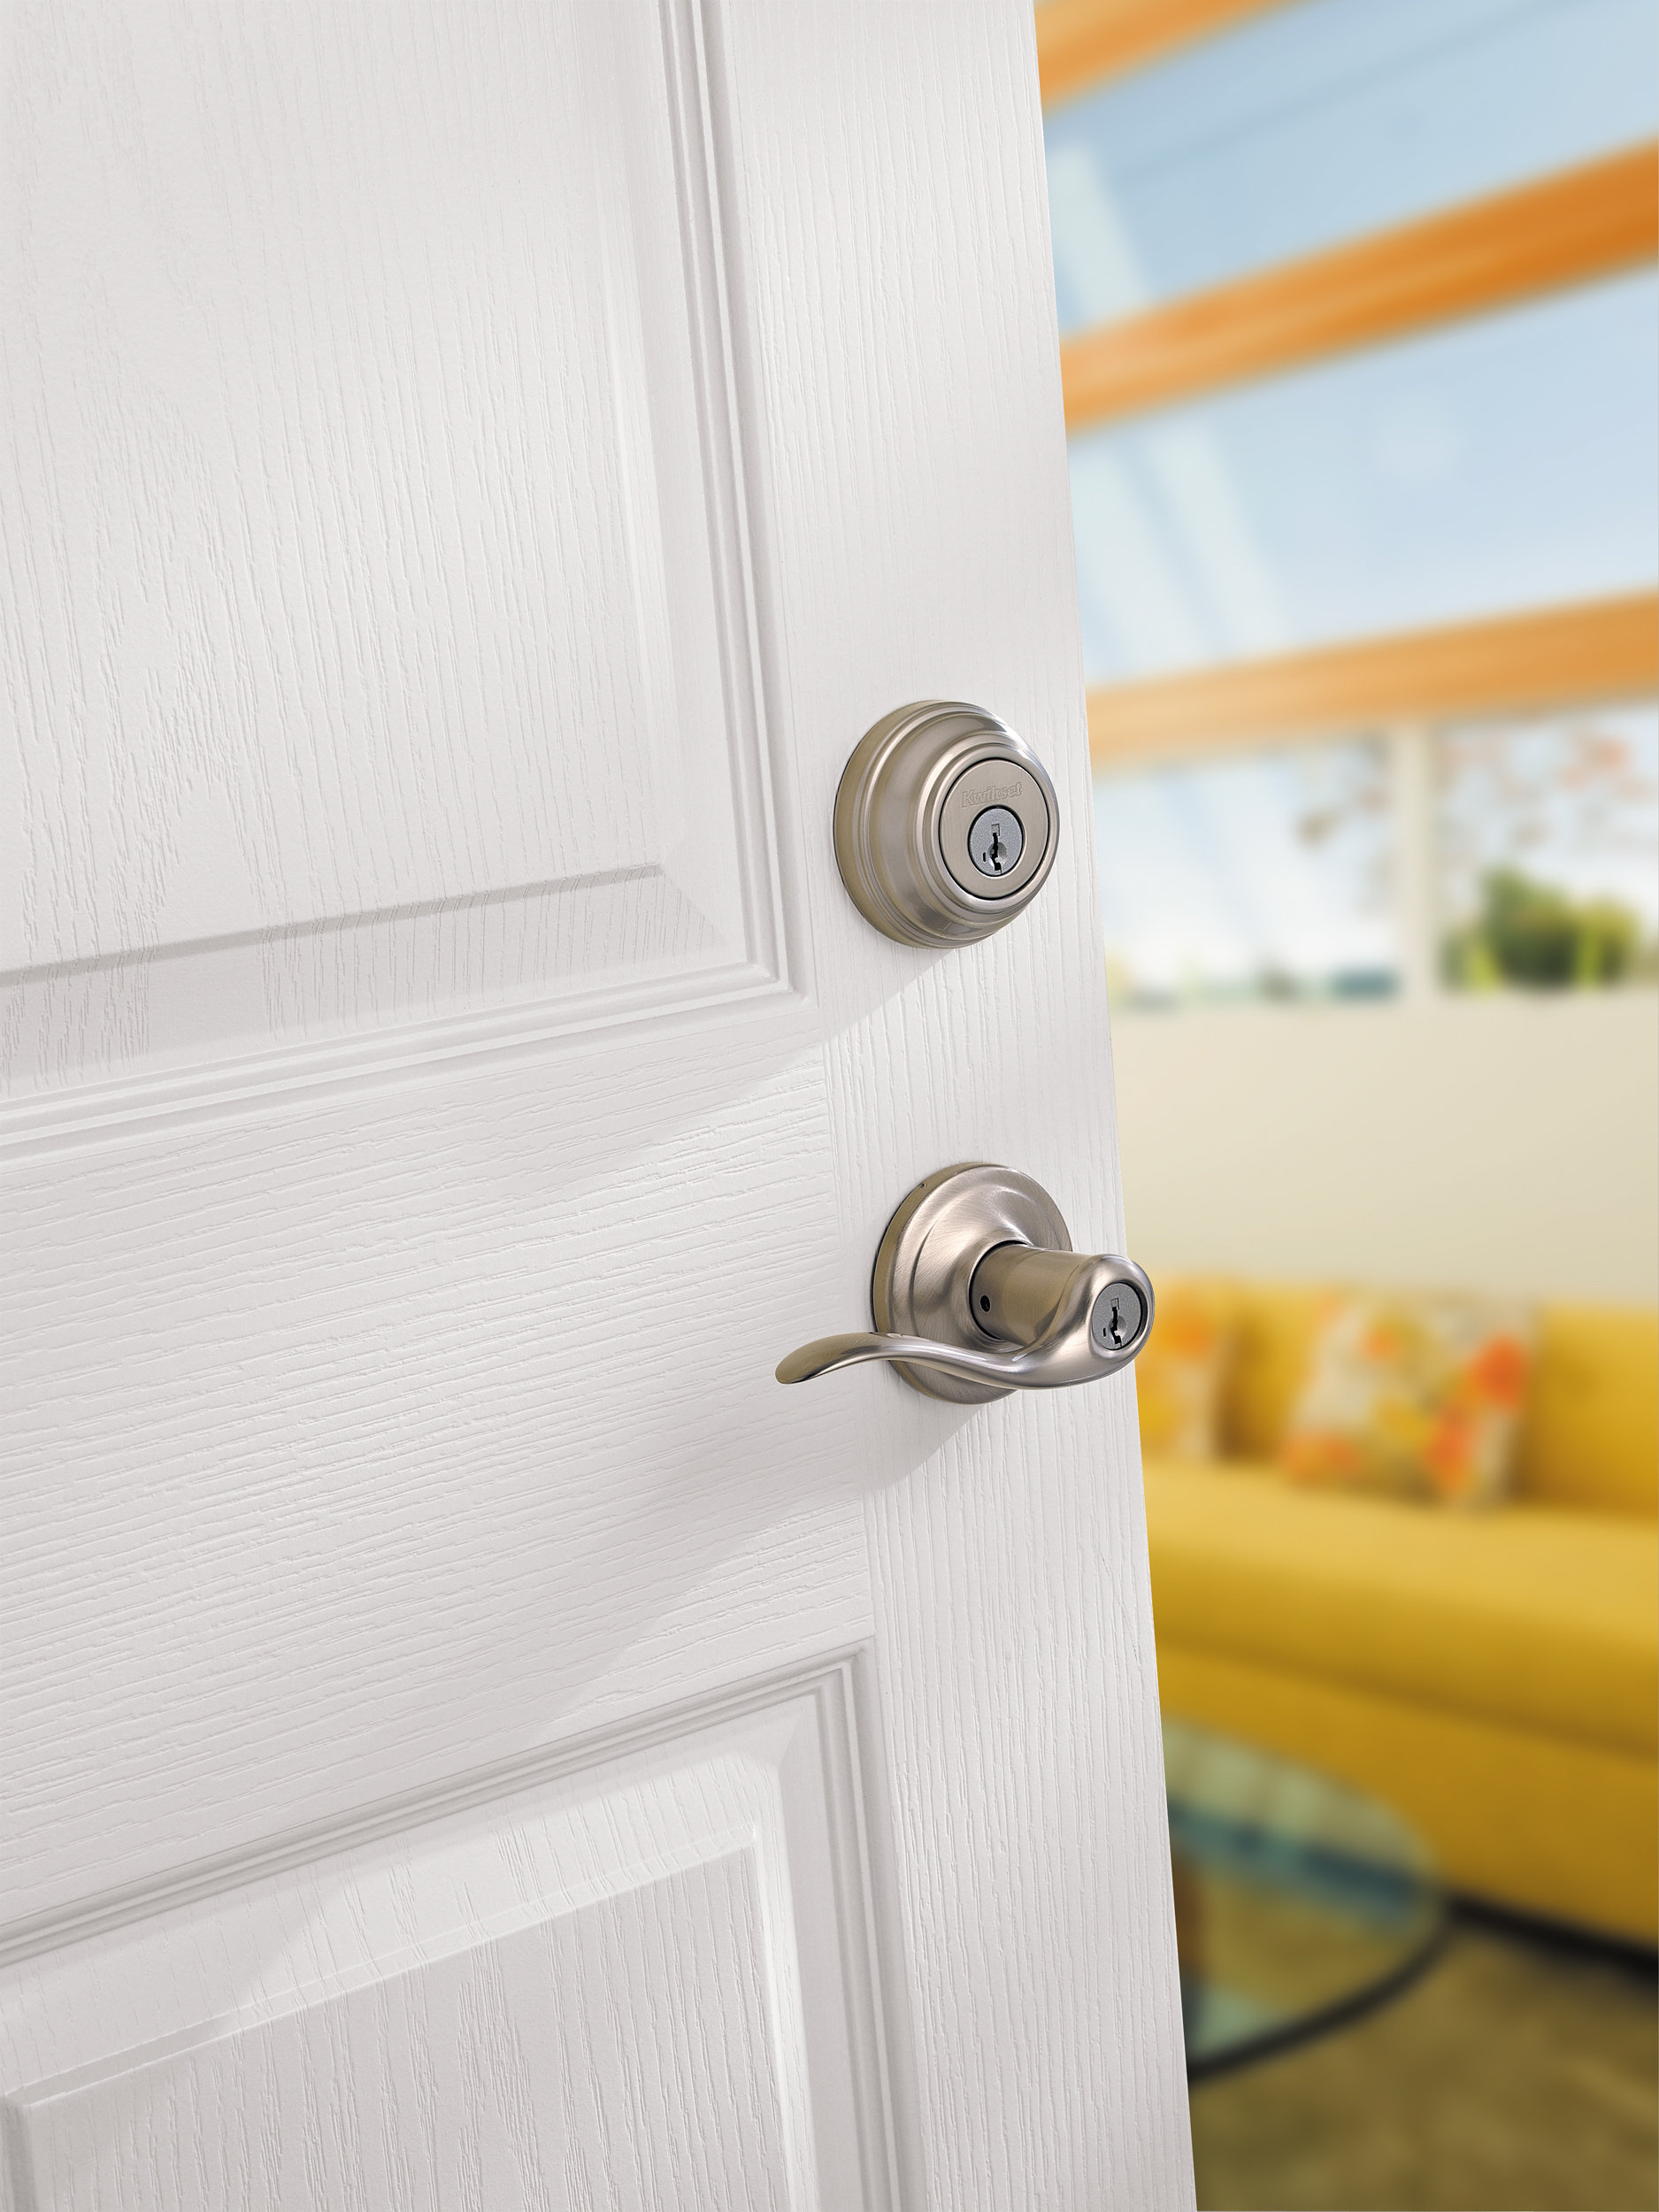 Kwikset Tustin lever SmartKey & Kwikset Tustin Entry Lever featuring SmartKey in Satin Nickel ... Pezcame.Com